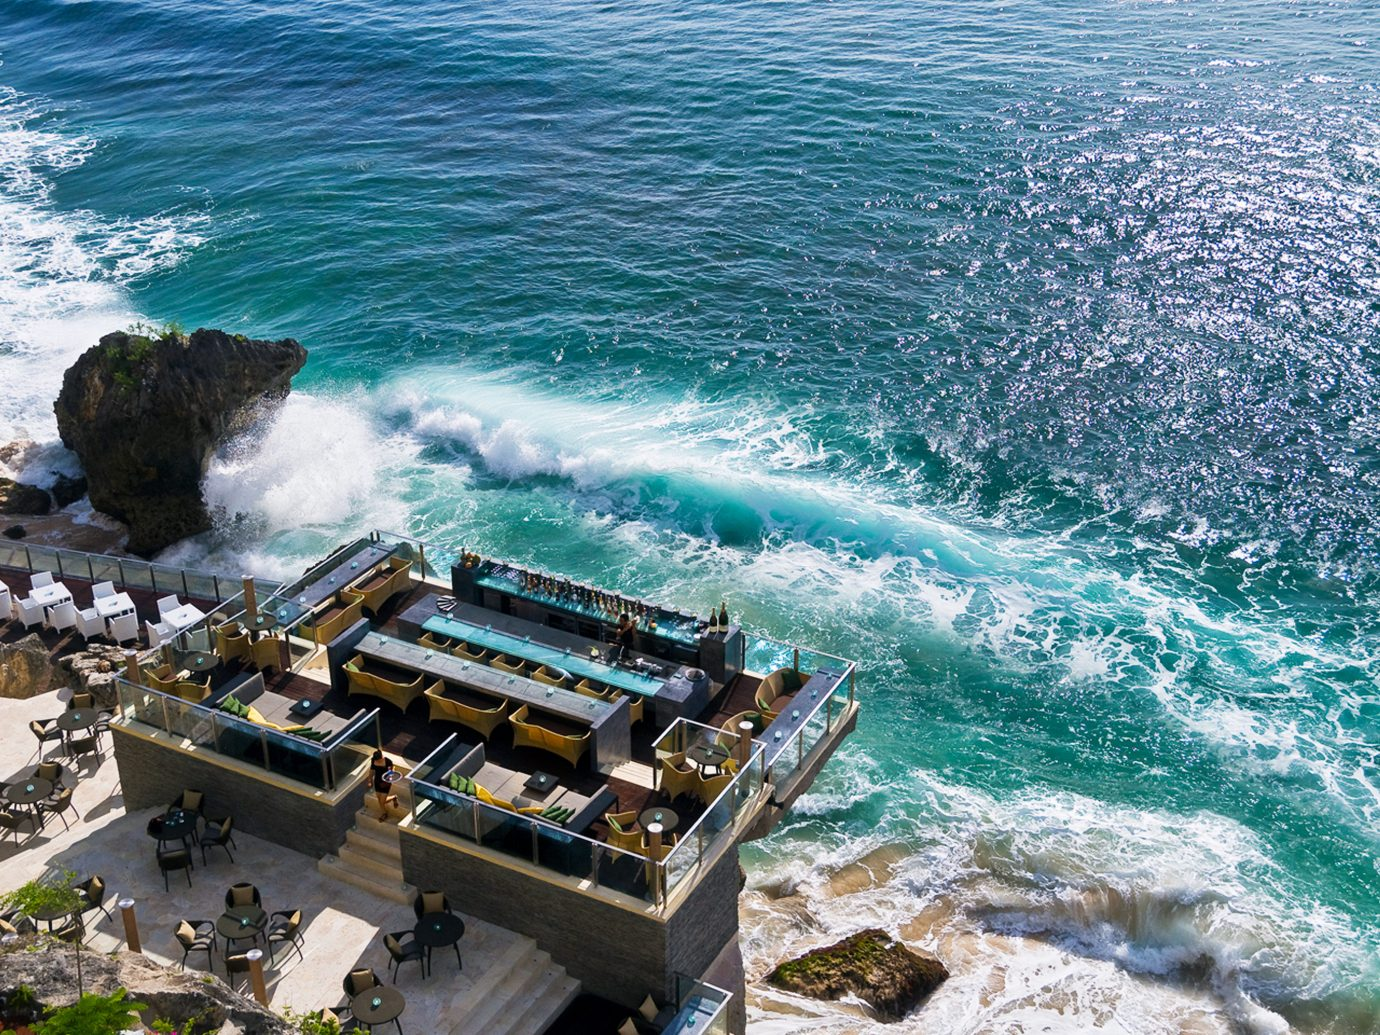 Beach Beachfront Boat Elegant Food + Drink Hotels Lounge Luxury Ocean Trip Ideas water outdoor Sea Coast shore wind wave wave vacation cape vehicle terrain caribbean